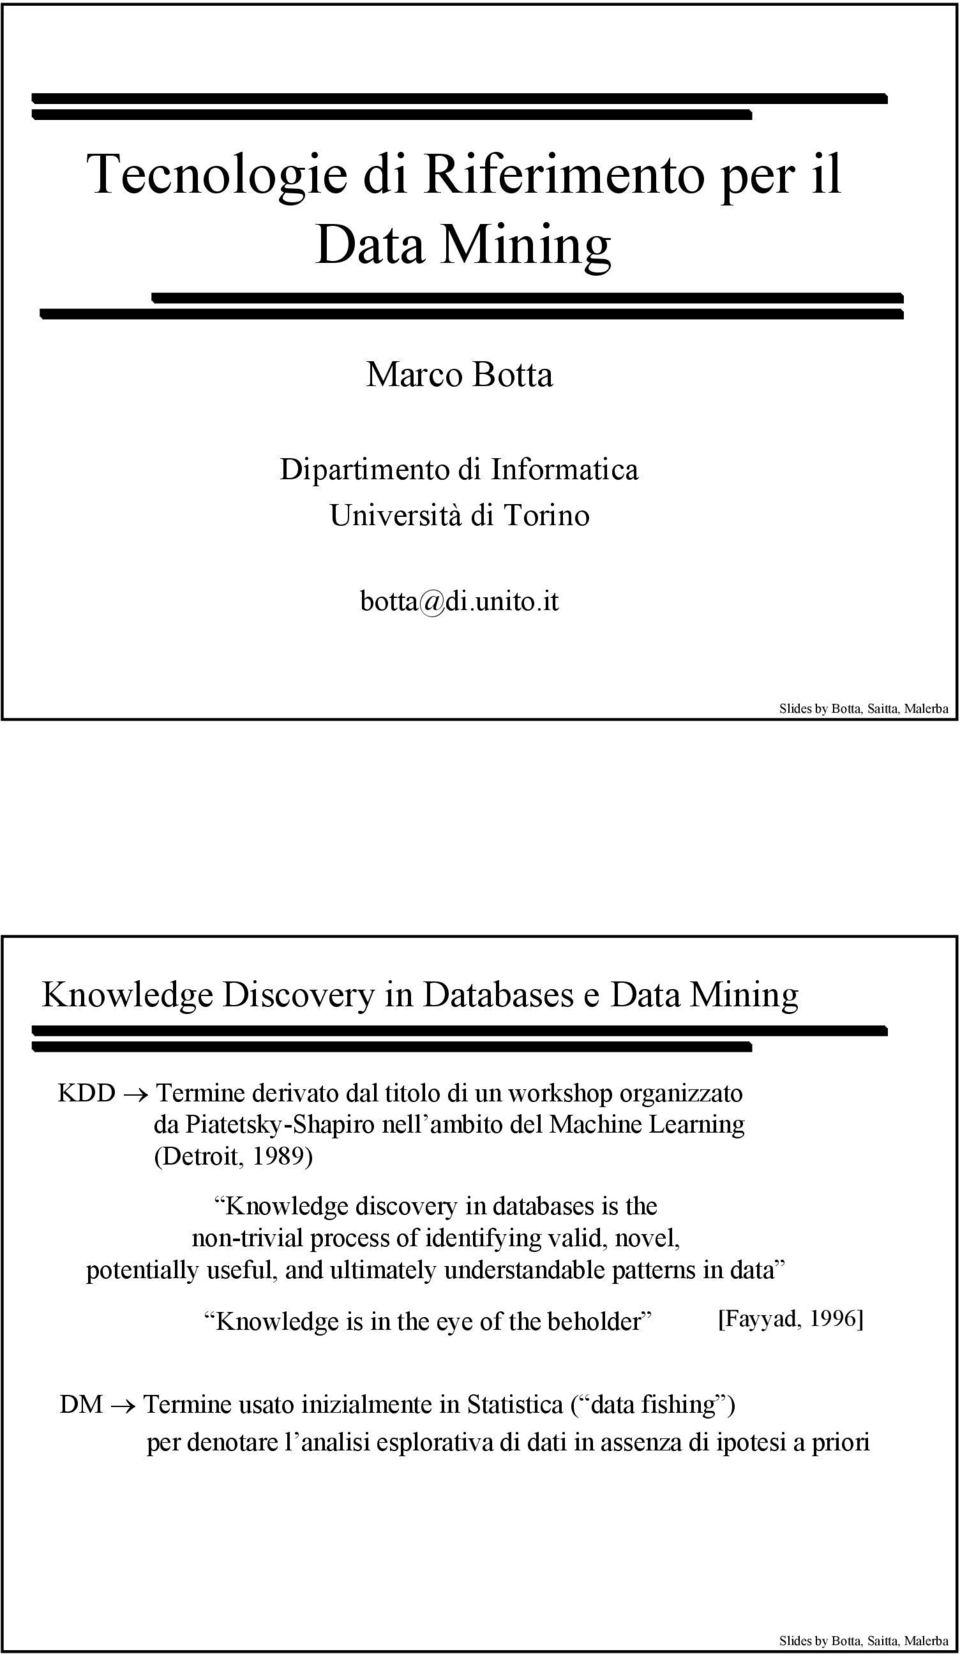 (Detrit, 1989) Knwledge discvery in databases is the nn-trivial prcess f identifying valid, nvel, ptentially useful, and ultimately understandable